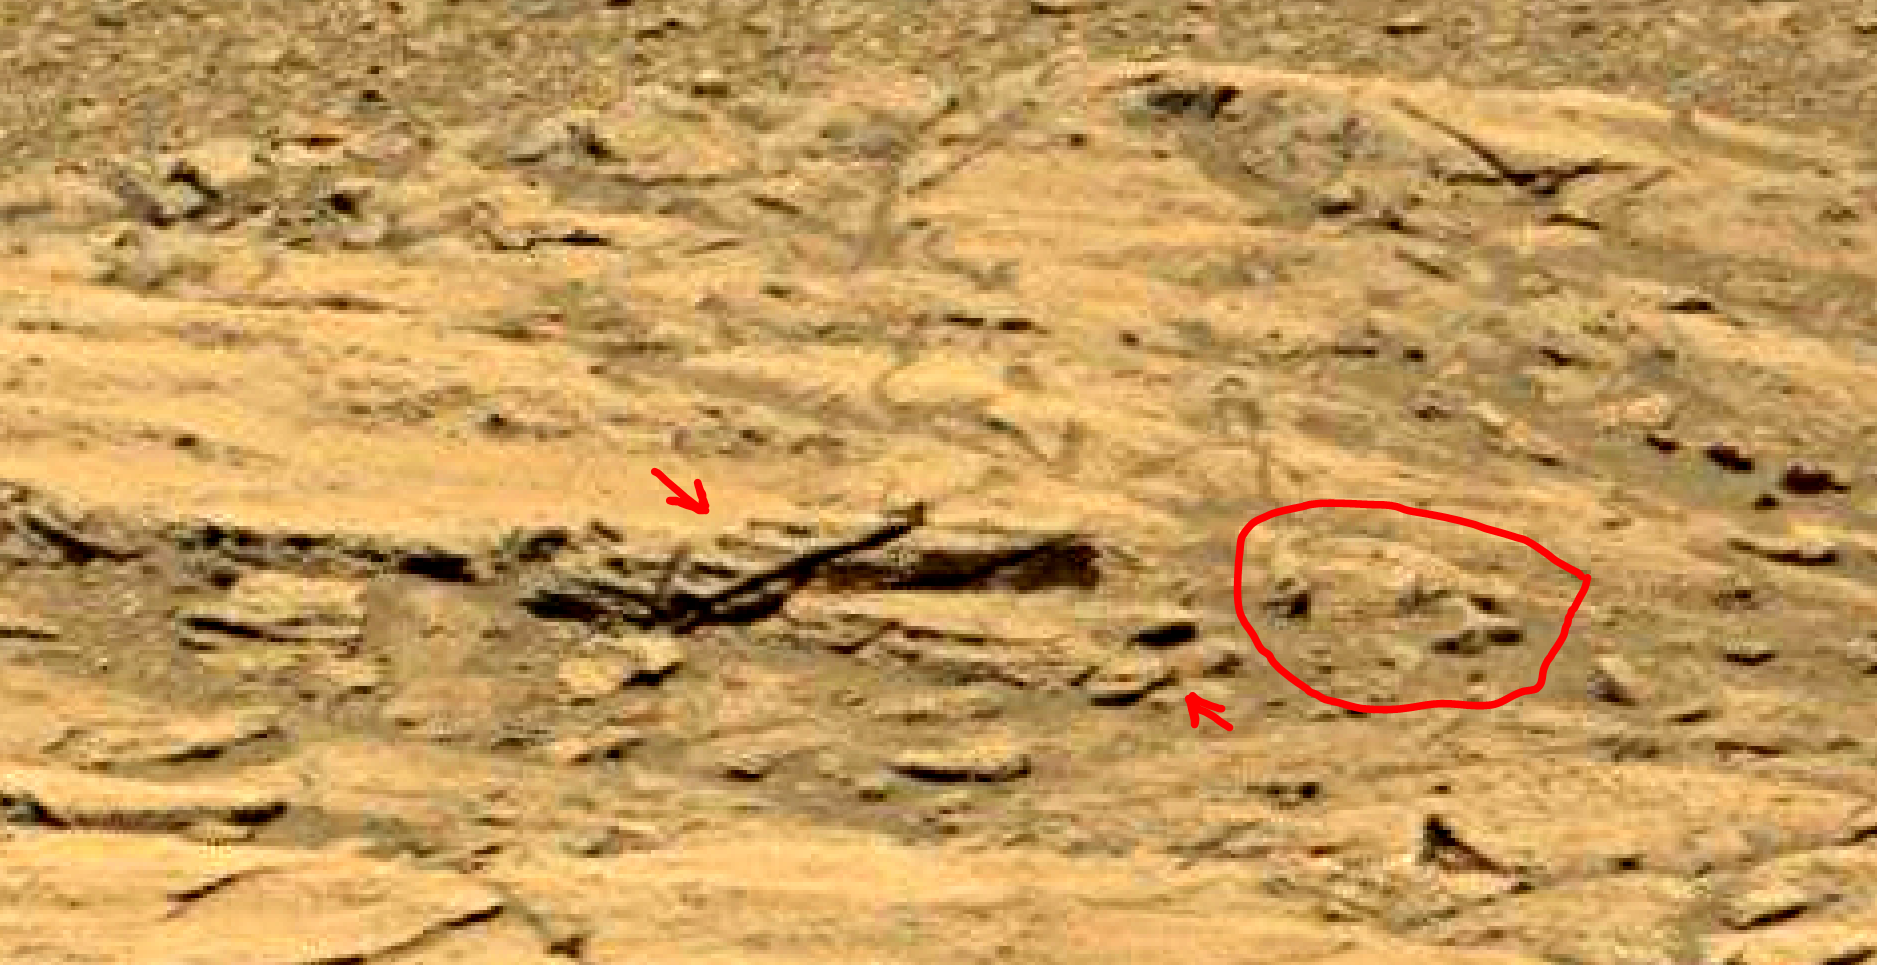 mars sol 1398 anomaly-artifacts 3 was life on mars